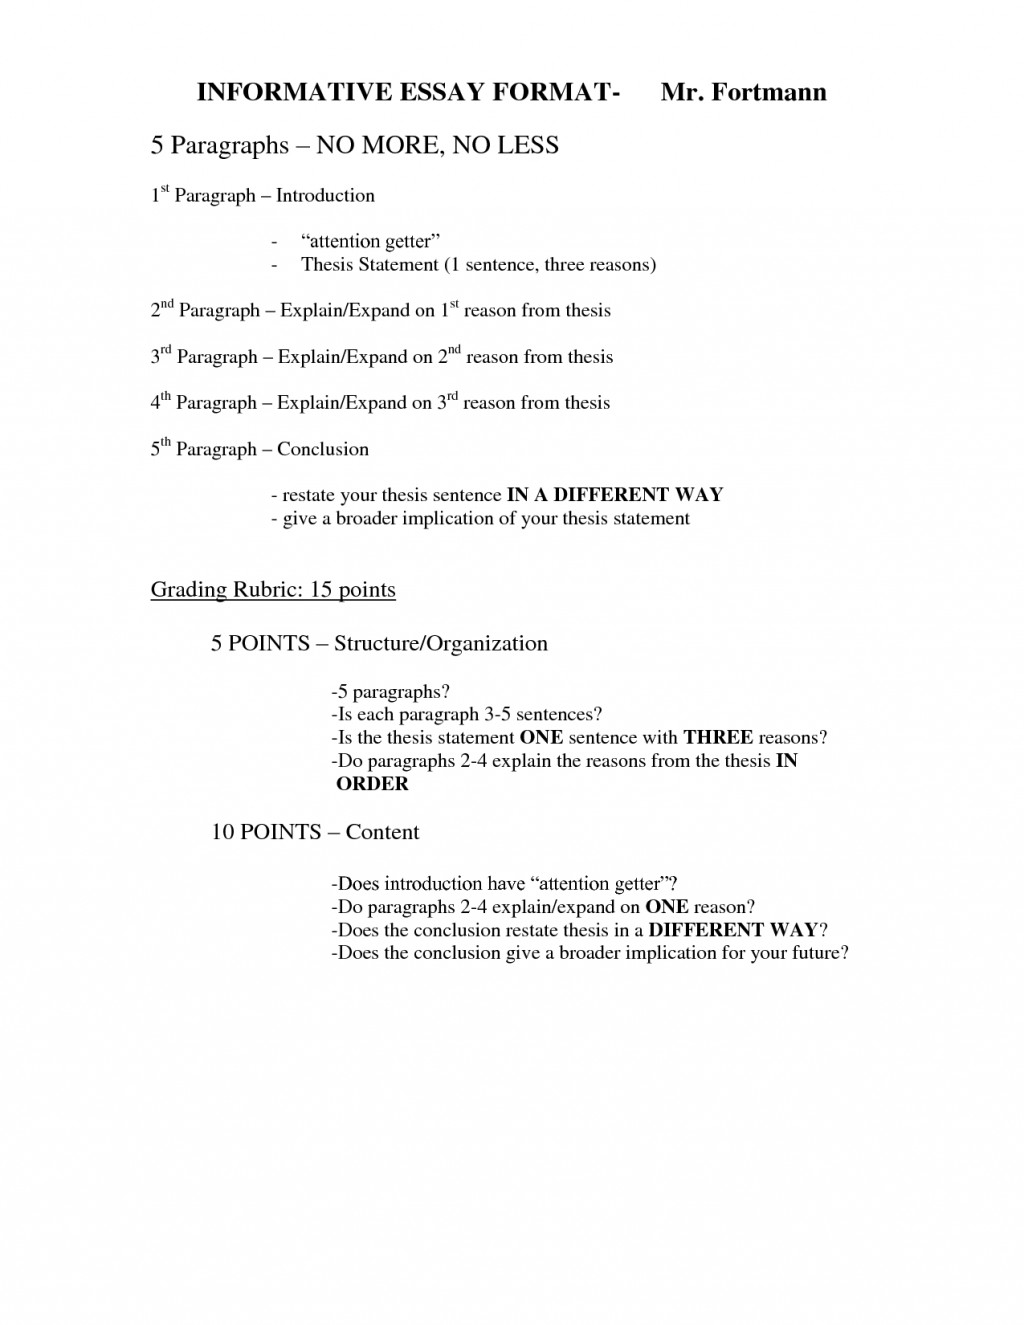 005 Informational Essay Unforgettable Rubric 4th Grade Informative Outline Explanatory Definition Large